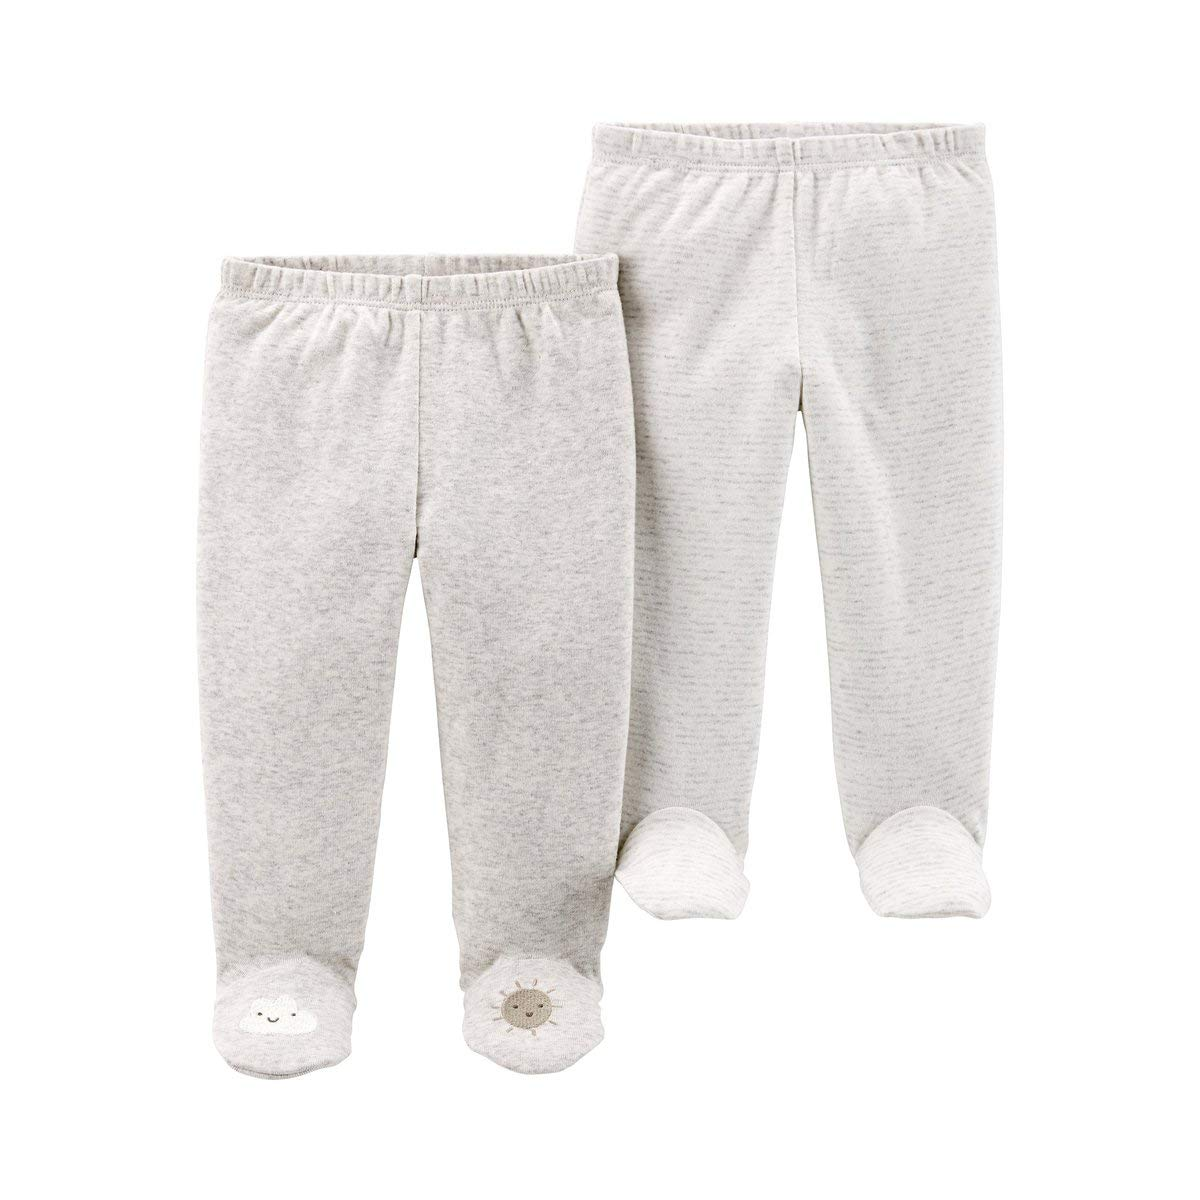 Carters Baby Boys 2-Pack Pull-On Pants